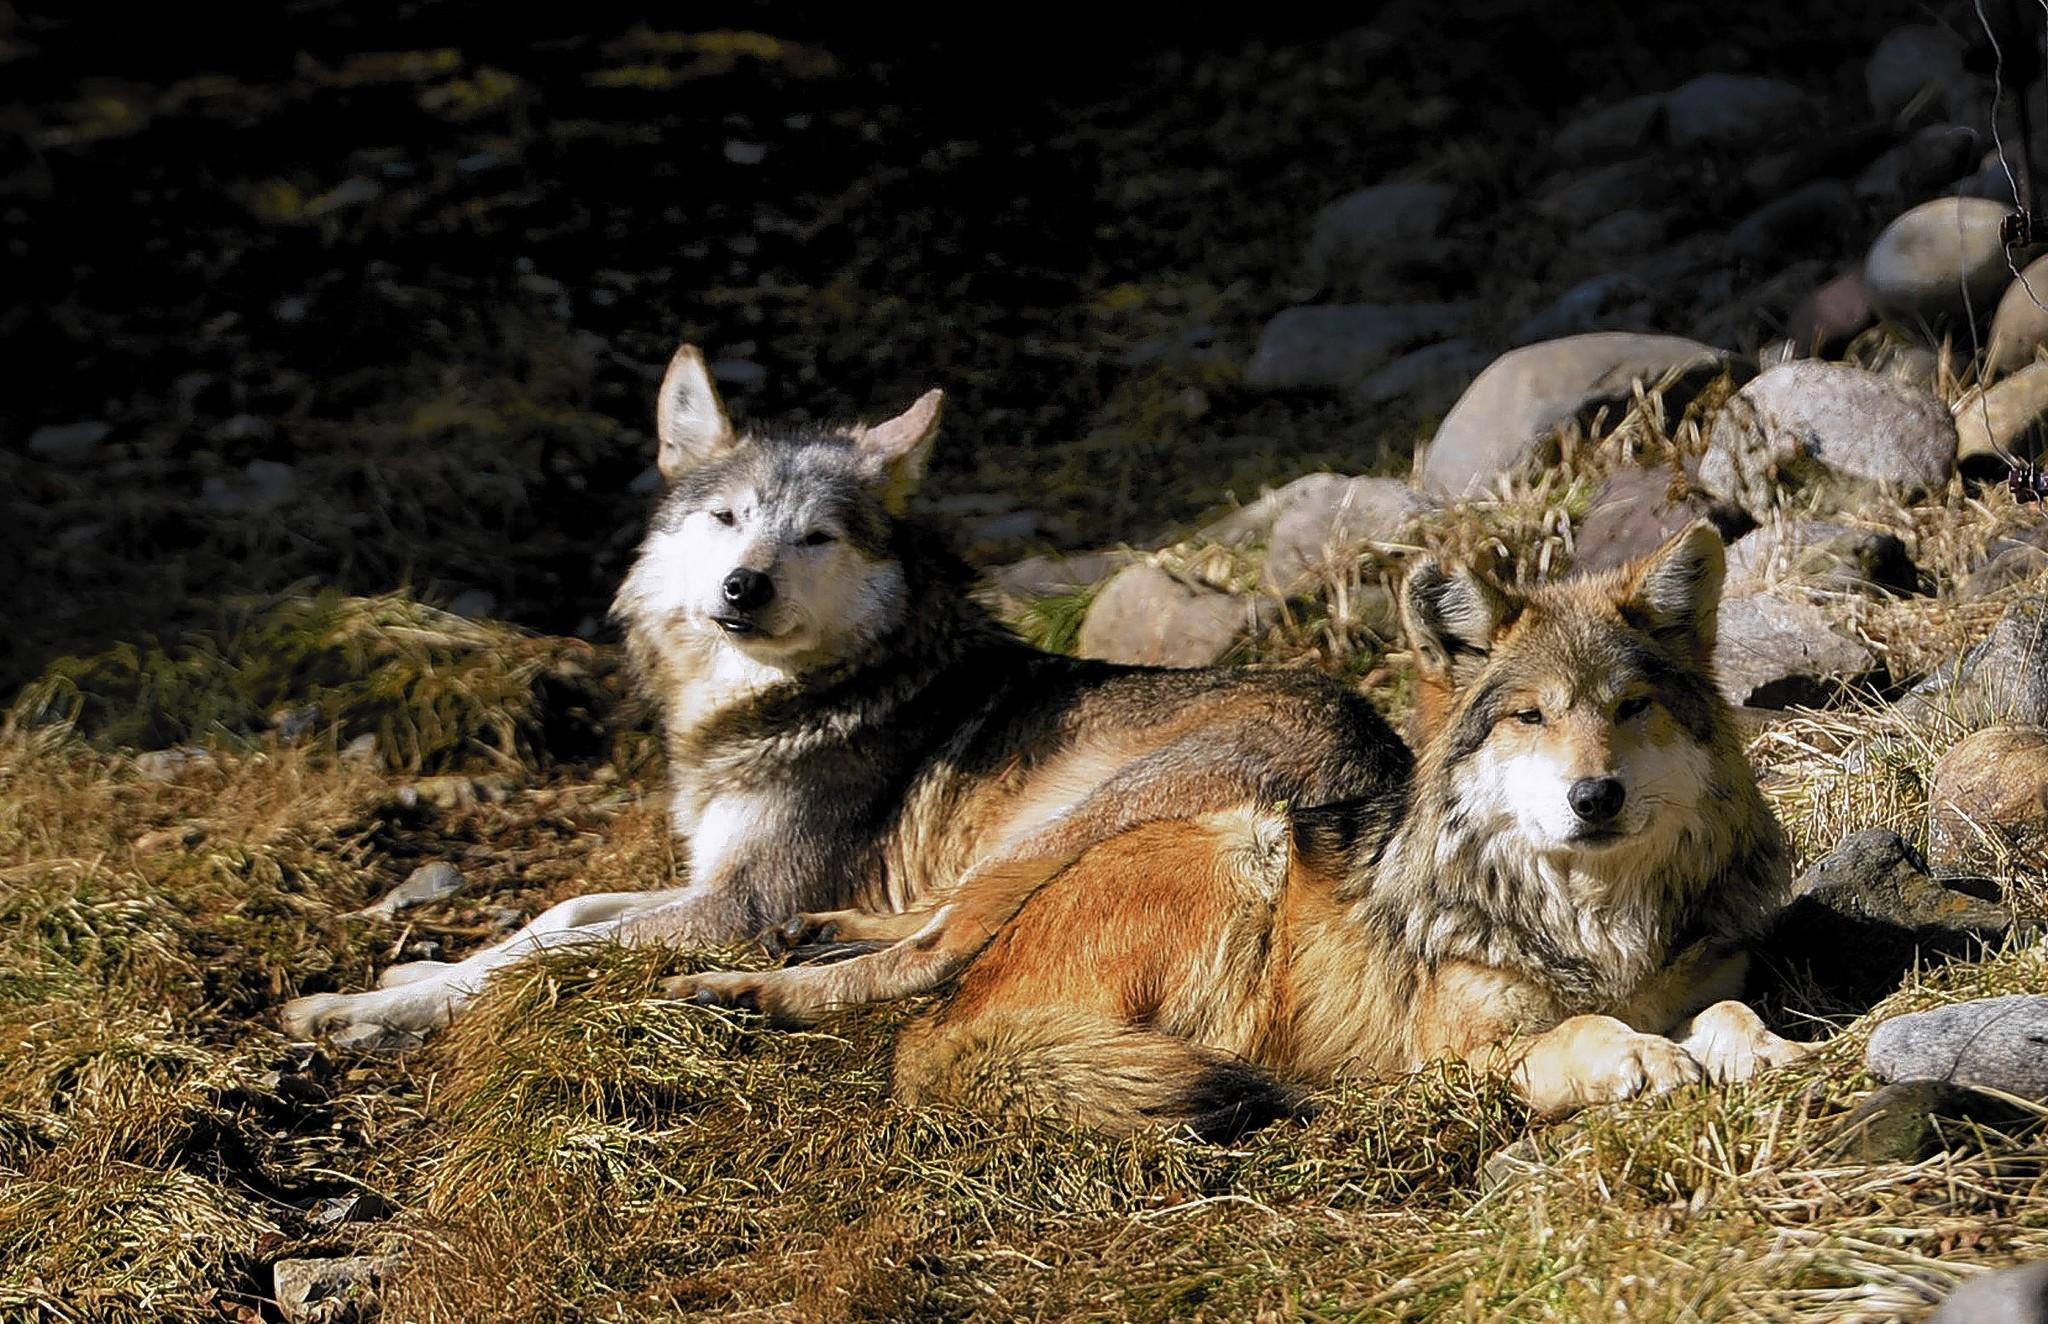 Mexican Grey Wolves are especially active in the winter, says Sherry Peters, director of conservation education at the Lehigh Valley Zoo.